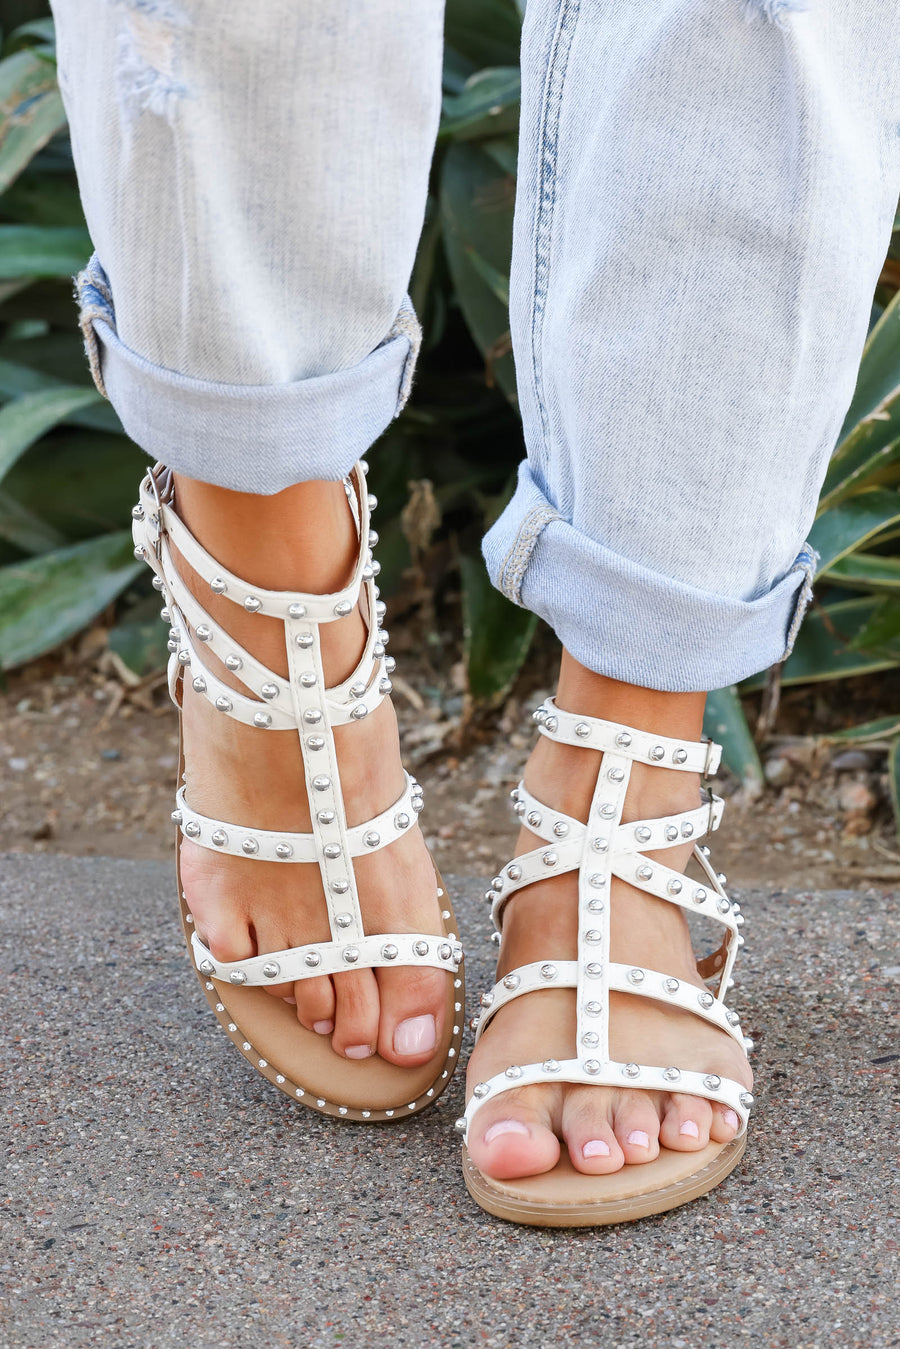 Shelby Studded Gladiator Sandal - White closet candy women's trendy strappy sandals with stud details 1